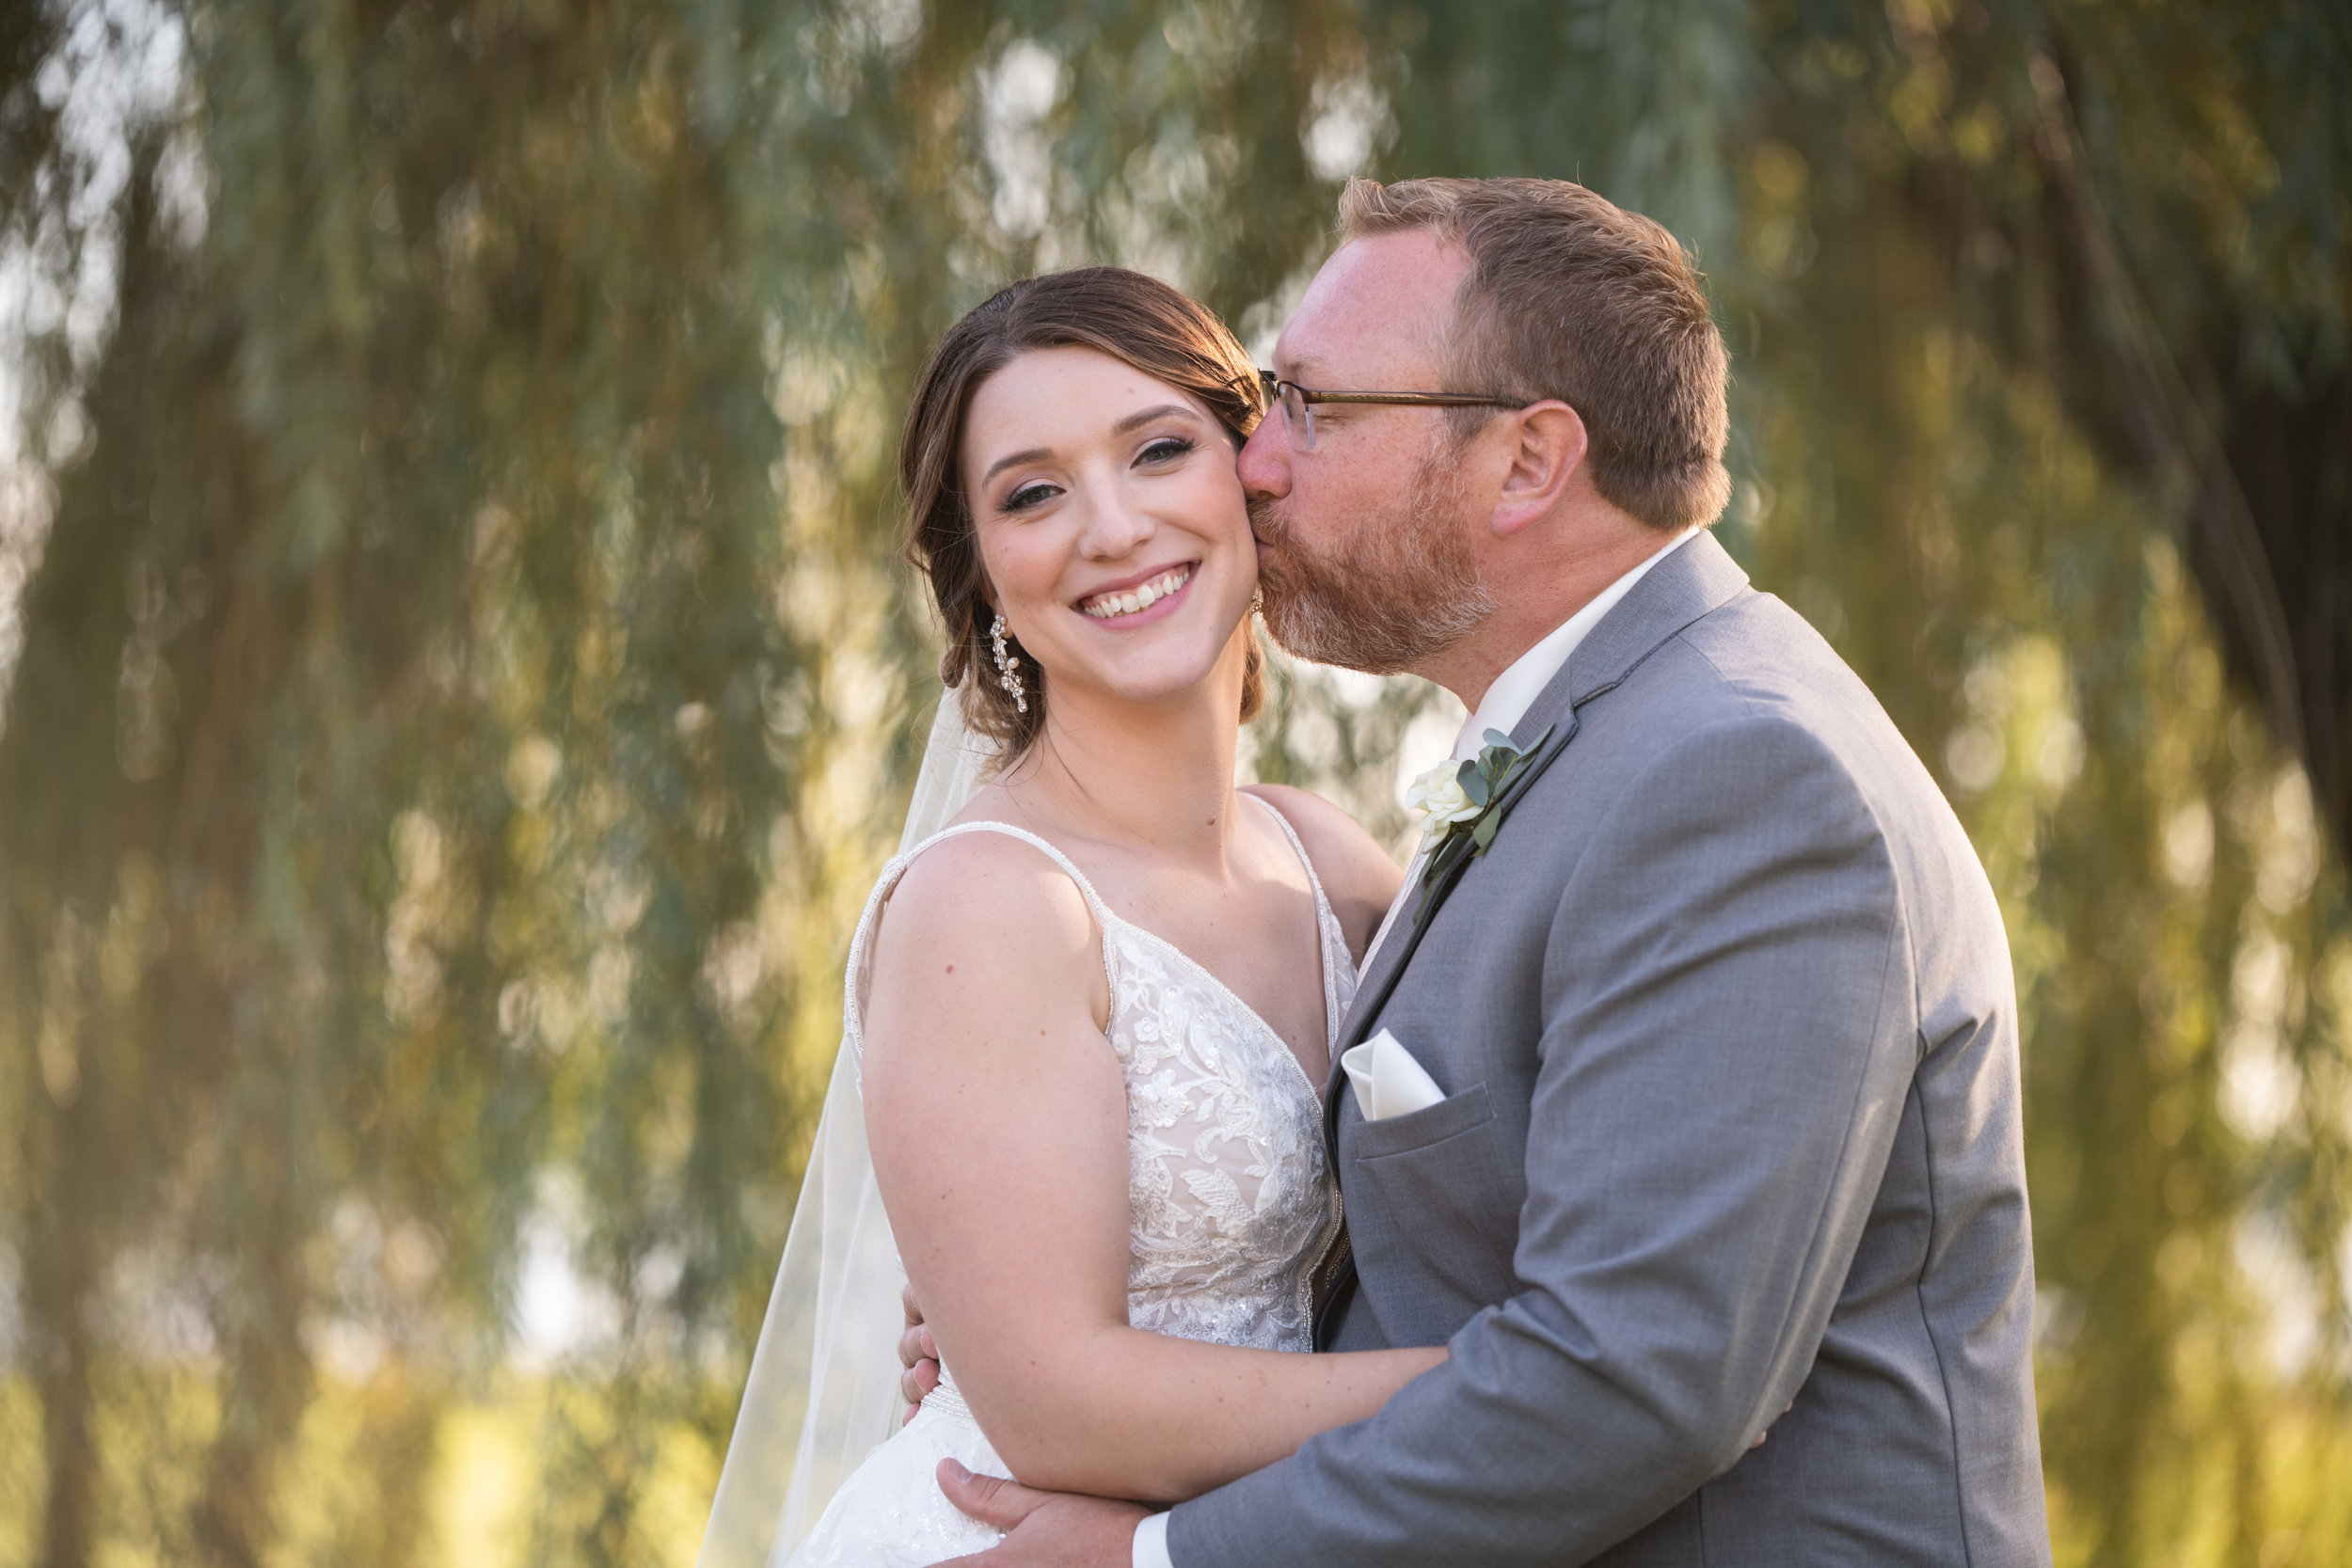 Kerri + Kyle at Lake Lawn (August 24, 2019)